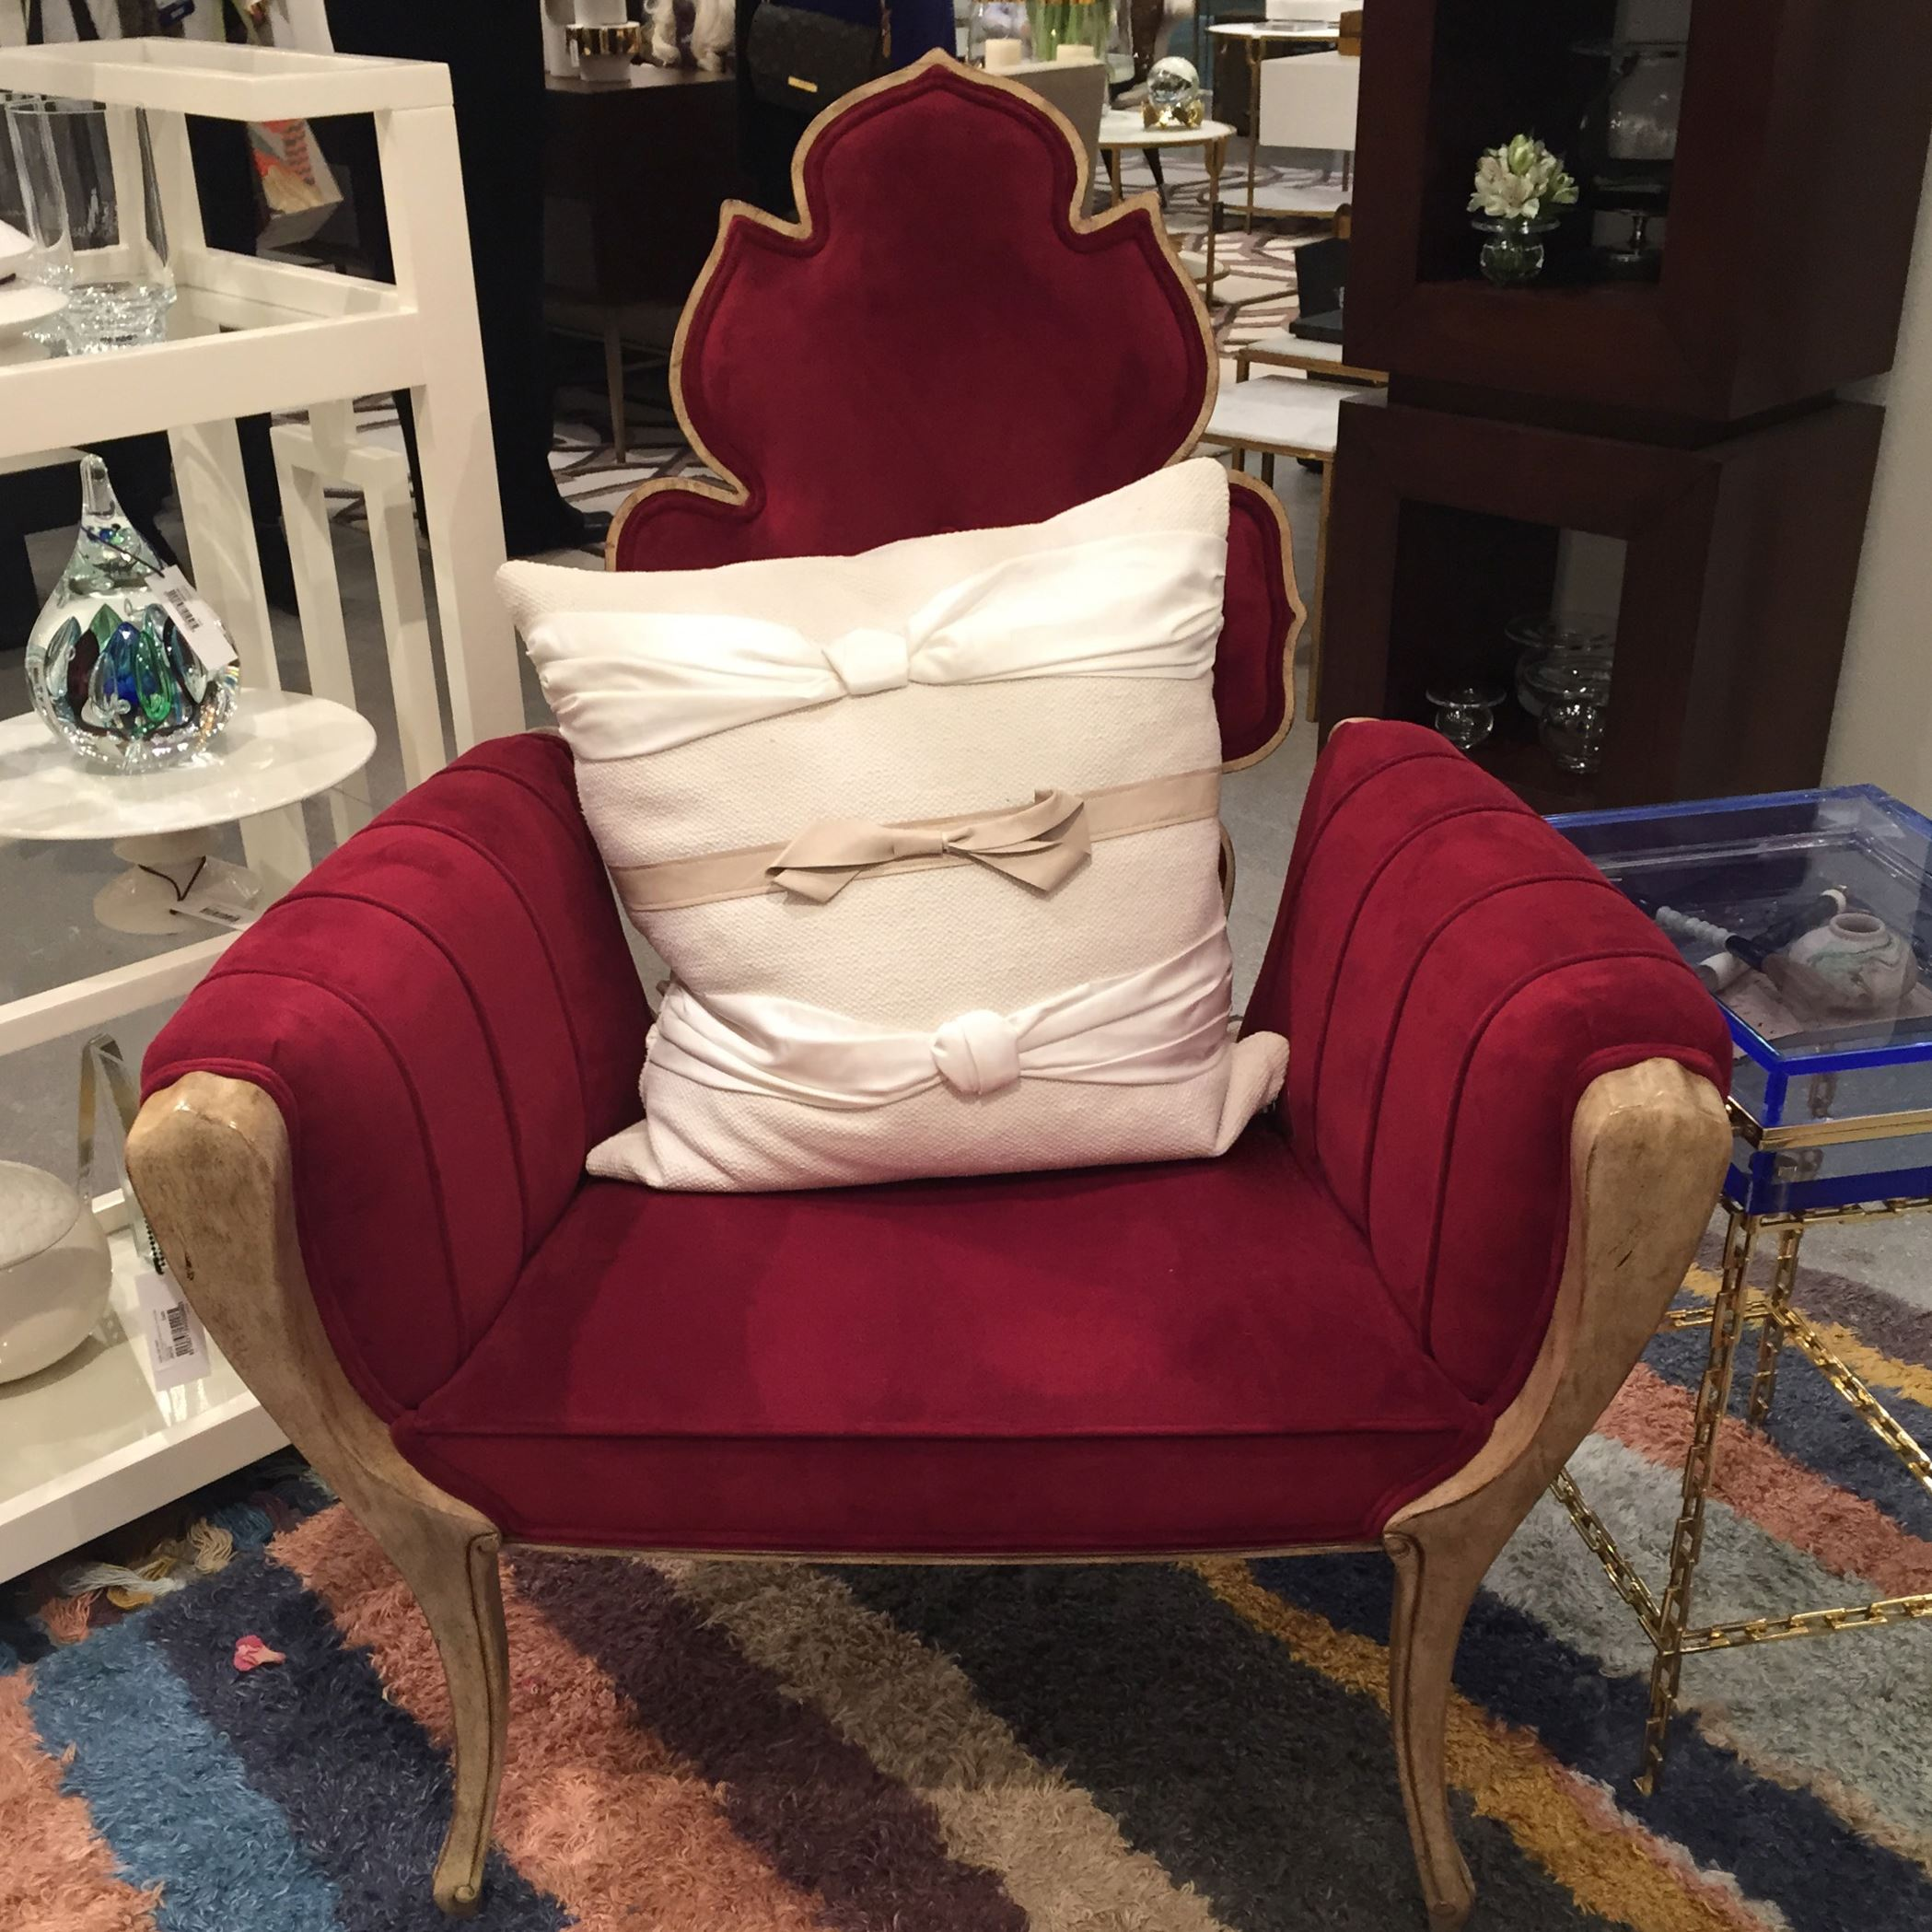 Global Views Wiggle Chair: The Las Vegas Furniture Market Shows Off Its Glitzy